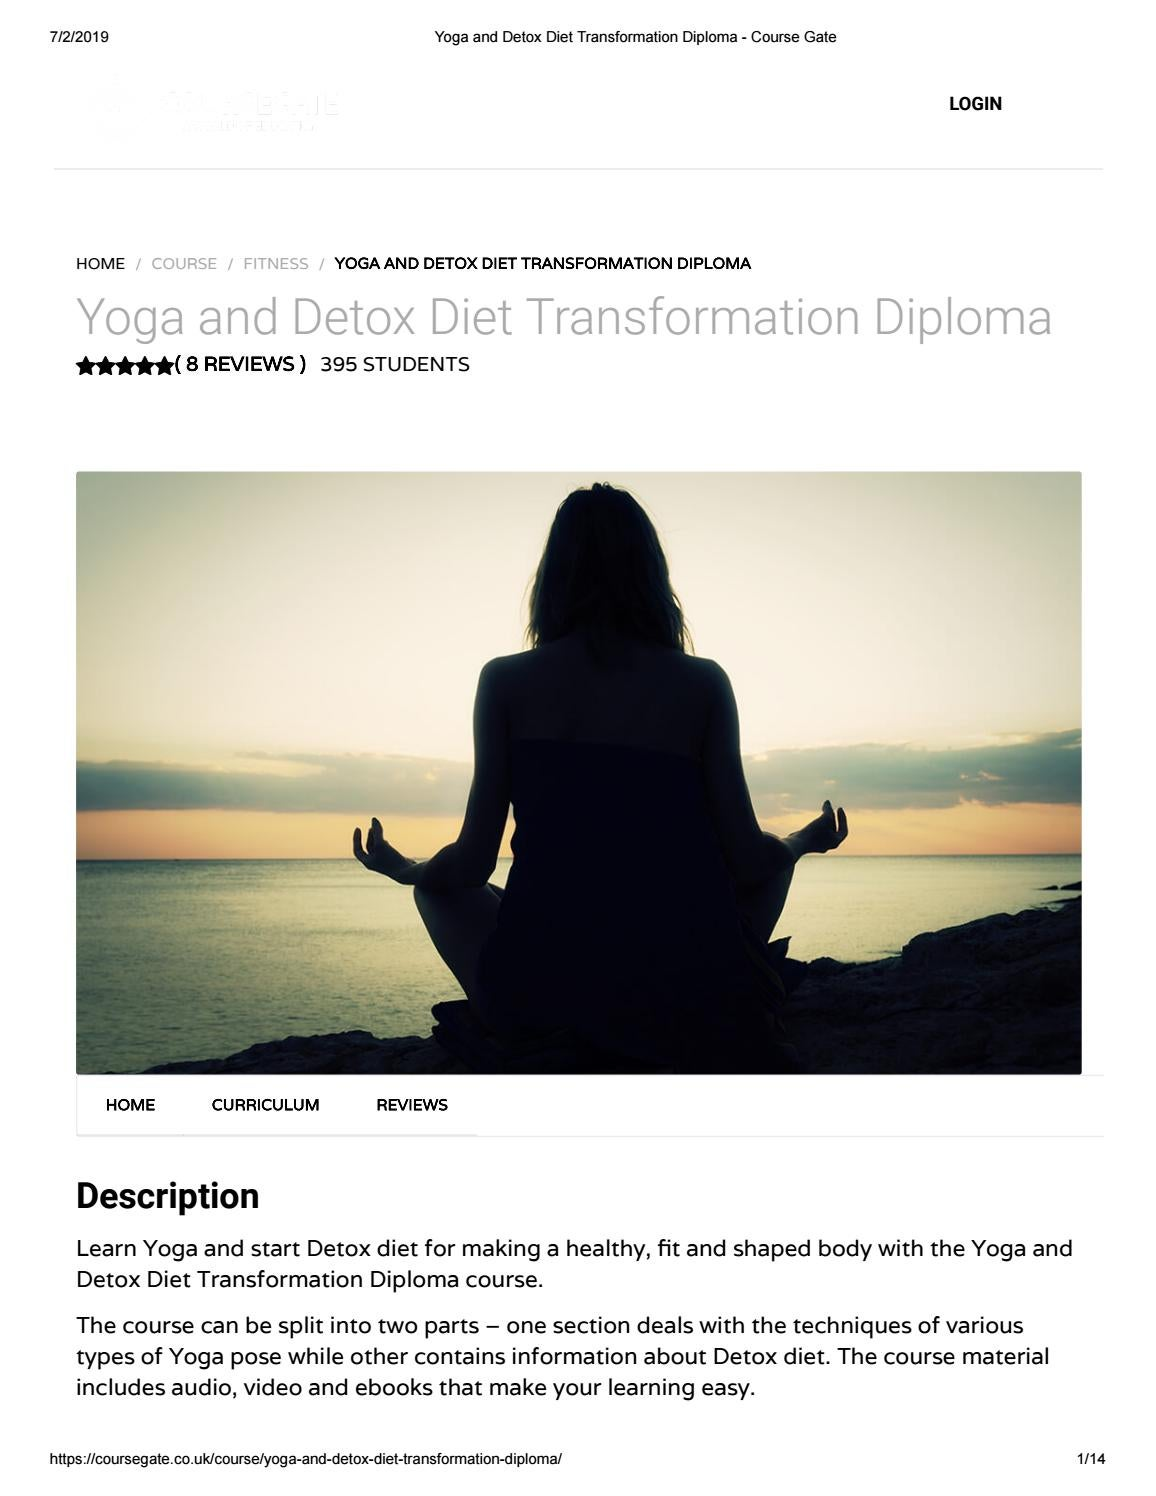 Yoga and Detox Diet Transformation Diploma - Course Gate by